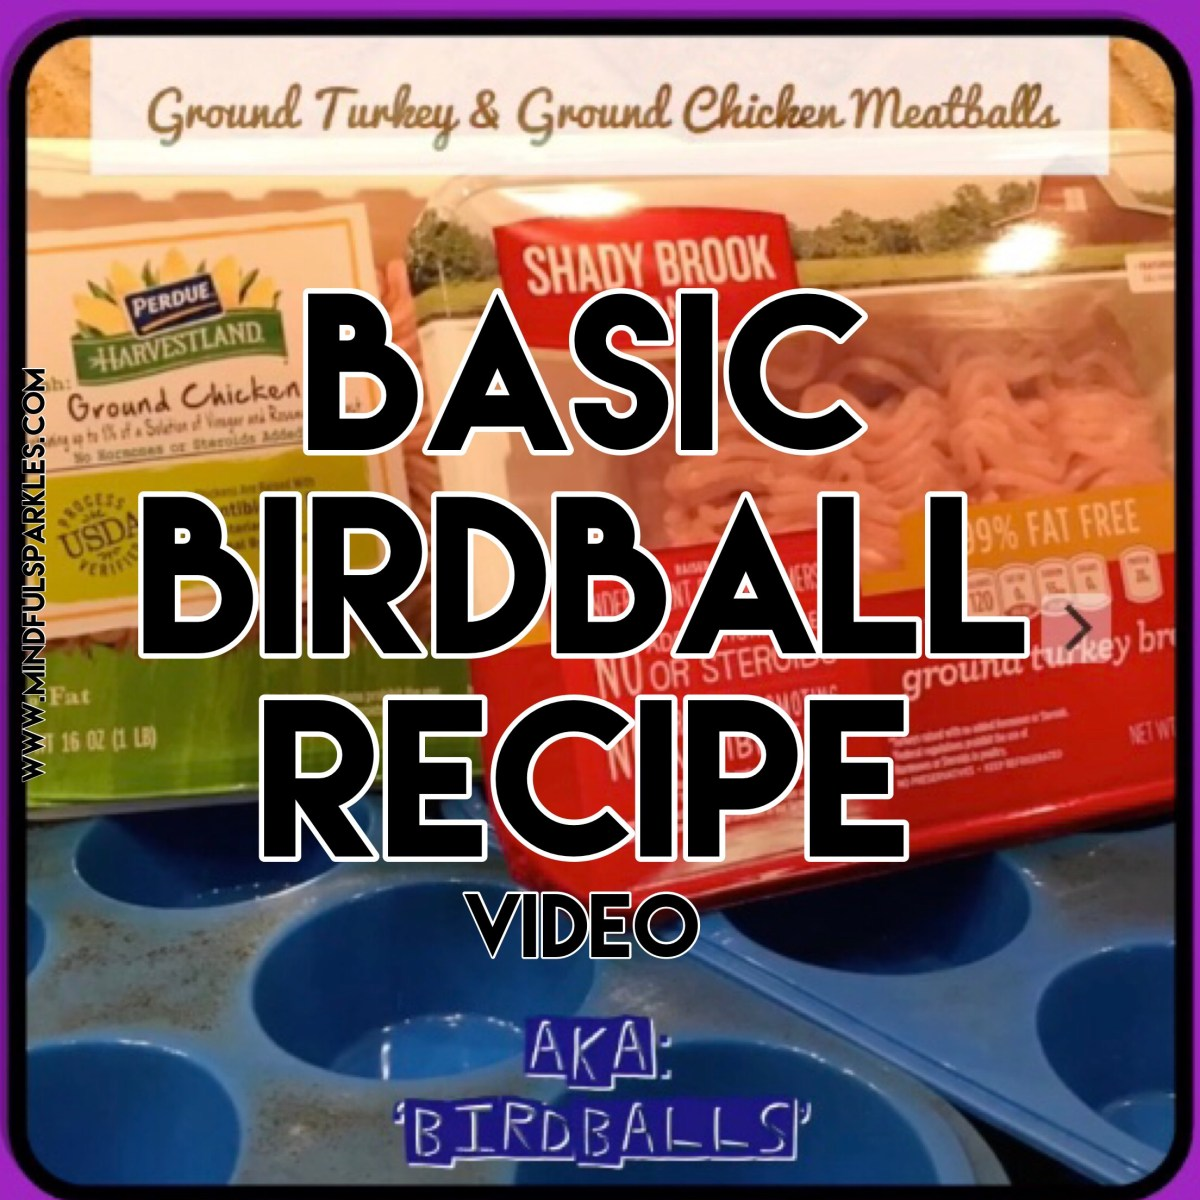 My Basic Turkey & Chicken Meatballs aka Birdball Recipe - updated to WW Freestyle